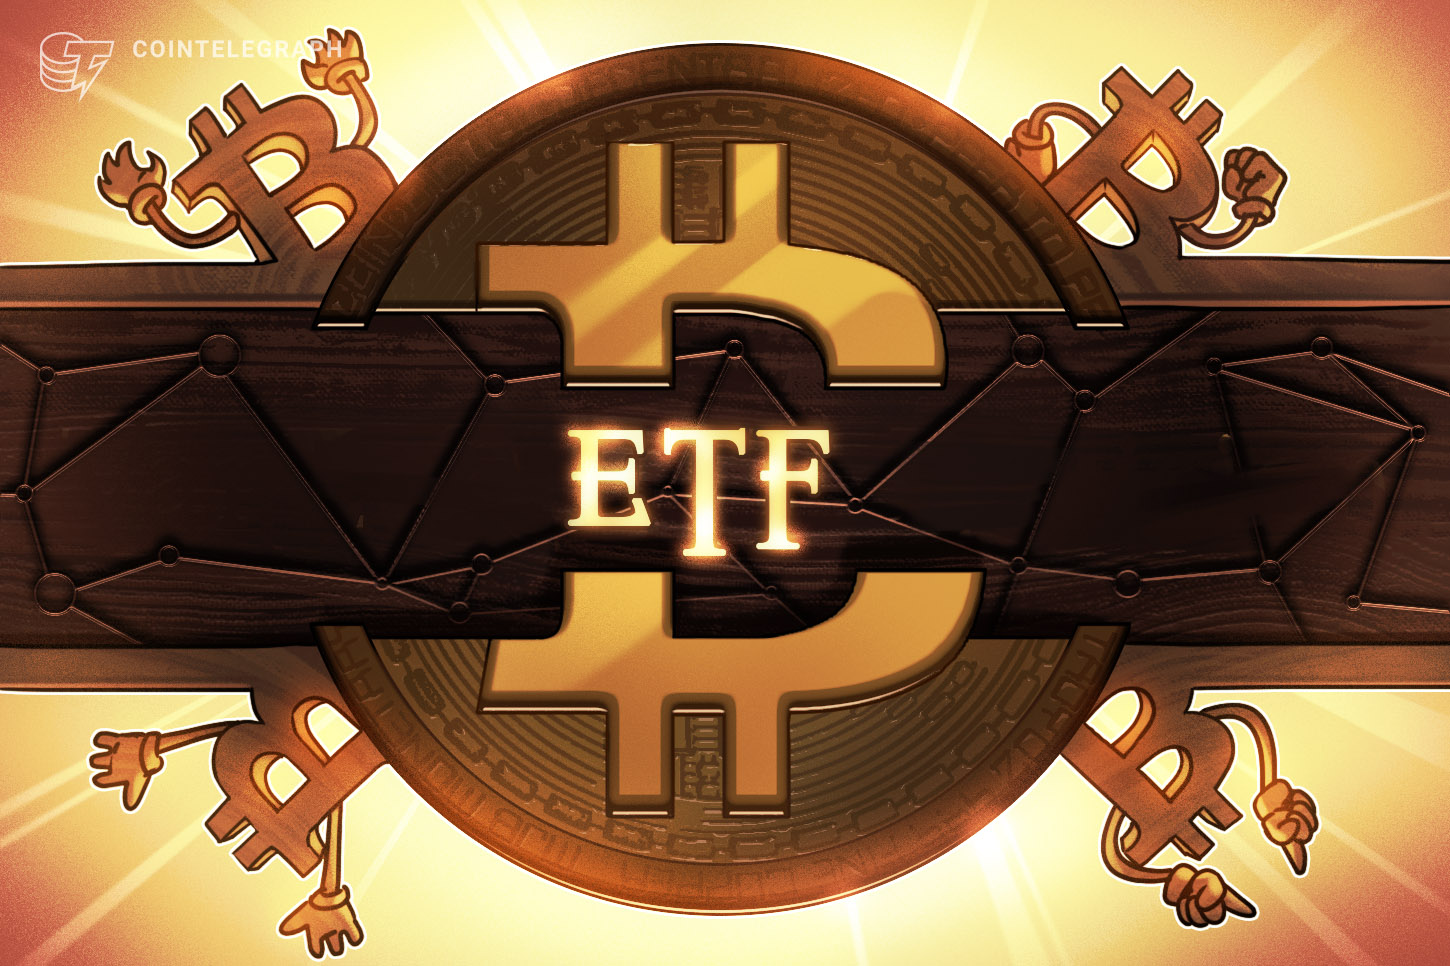 Osprey Funds CEO says US will approve Bitcoin ETF in 2022 'at earliest'